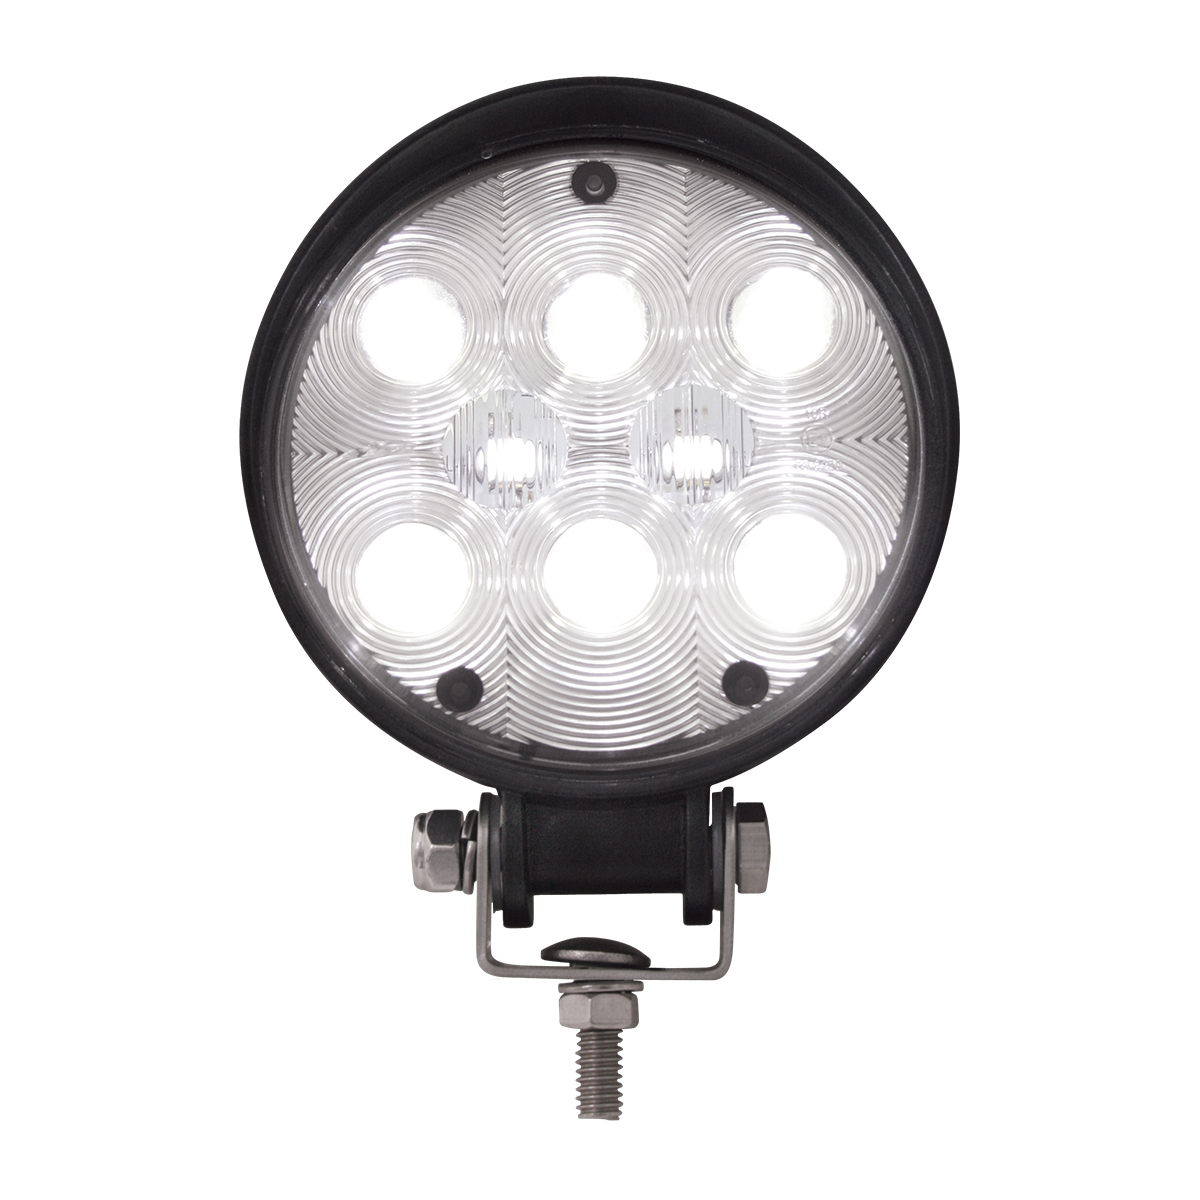 Round (8 LED) WORK LIGHT - High intensity White LED Truck Work Light